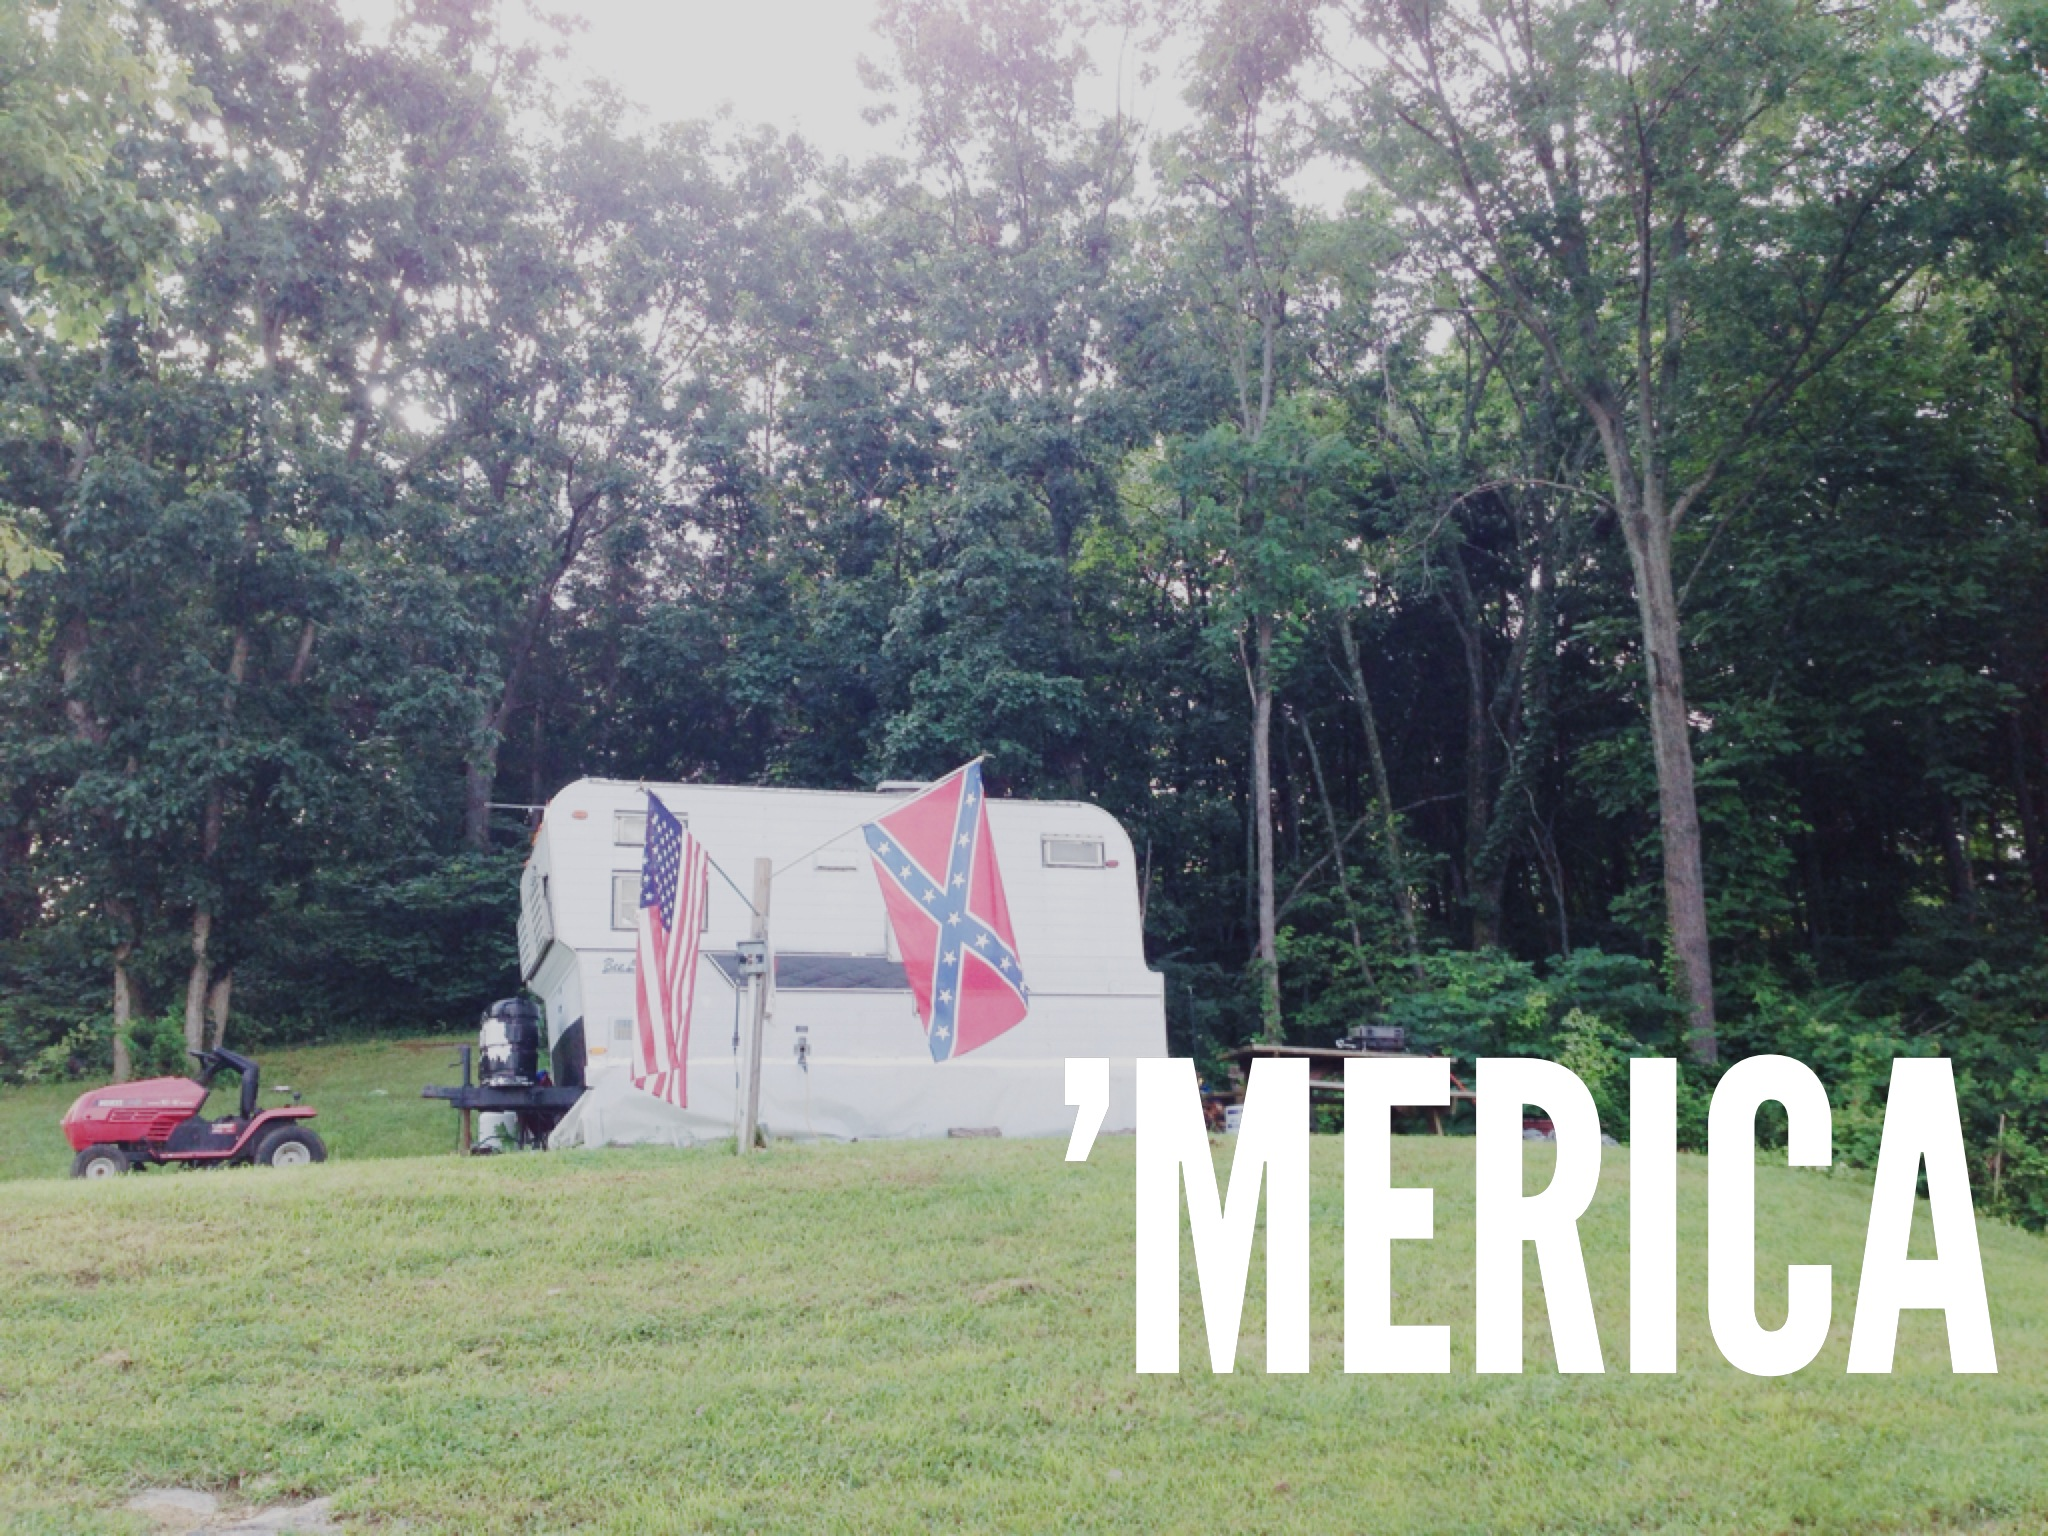 Our patriotic neighbors at the TA campground.